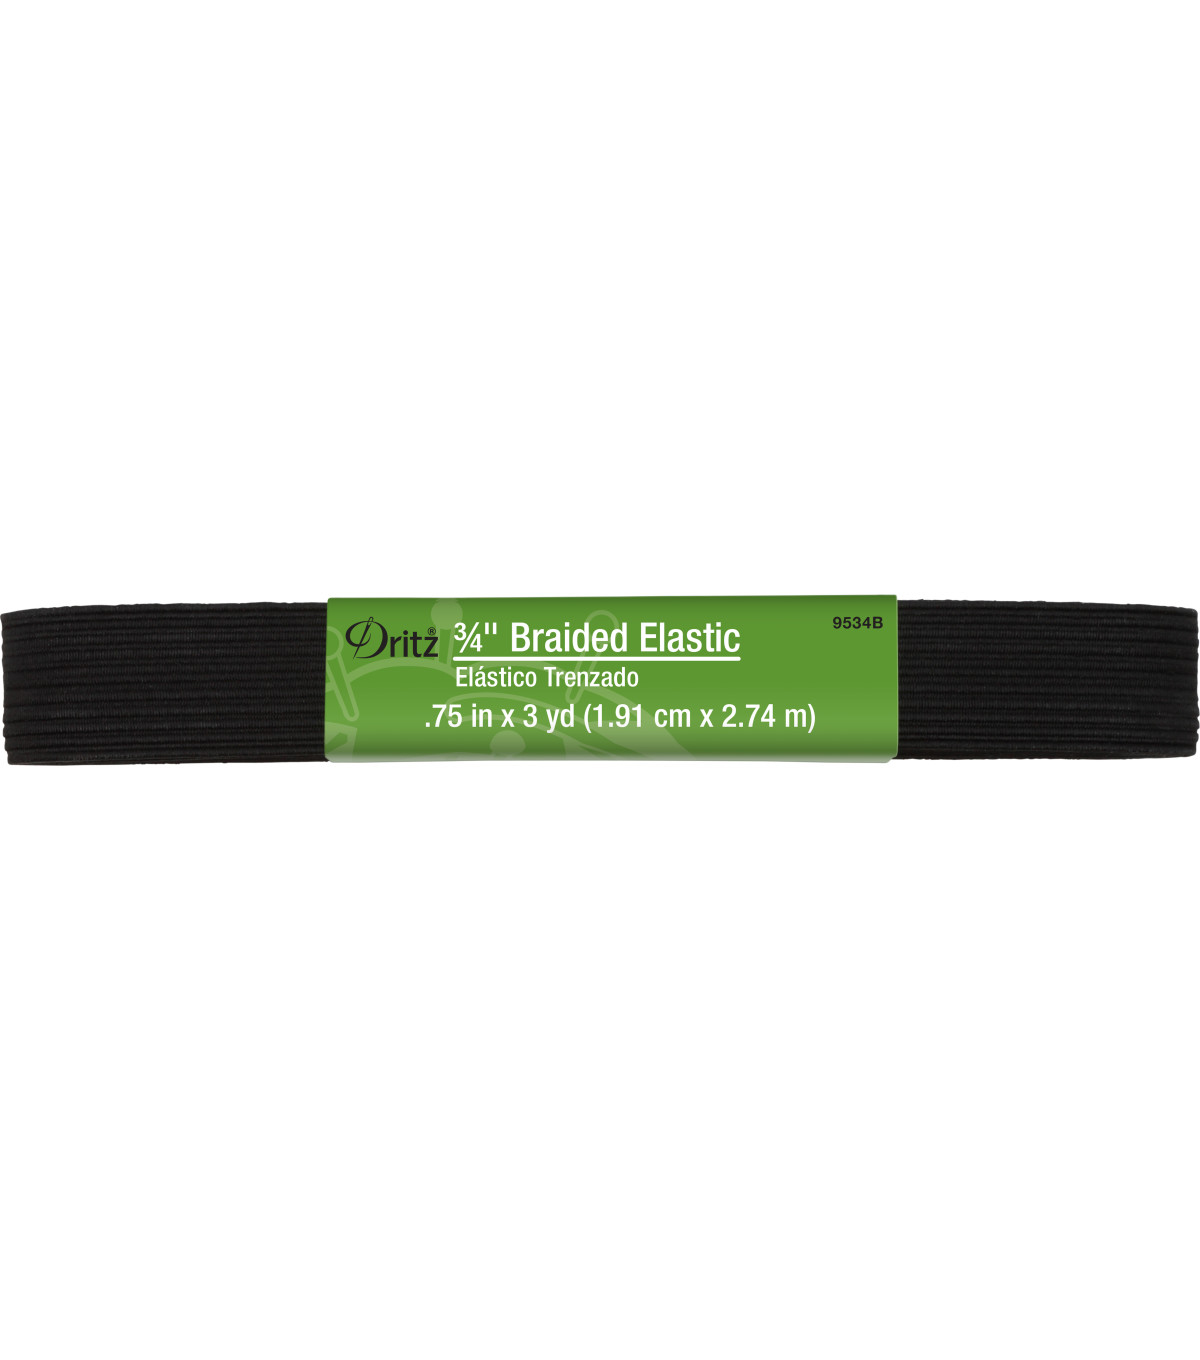 Dritz 3/4\u0022 Braided Elastic Hank Black 3 Yd